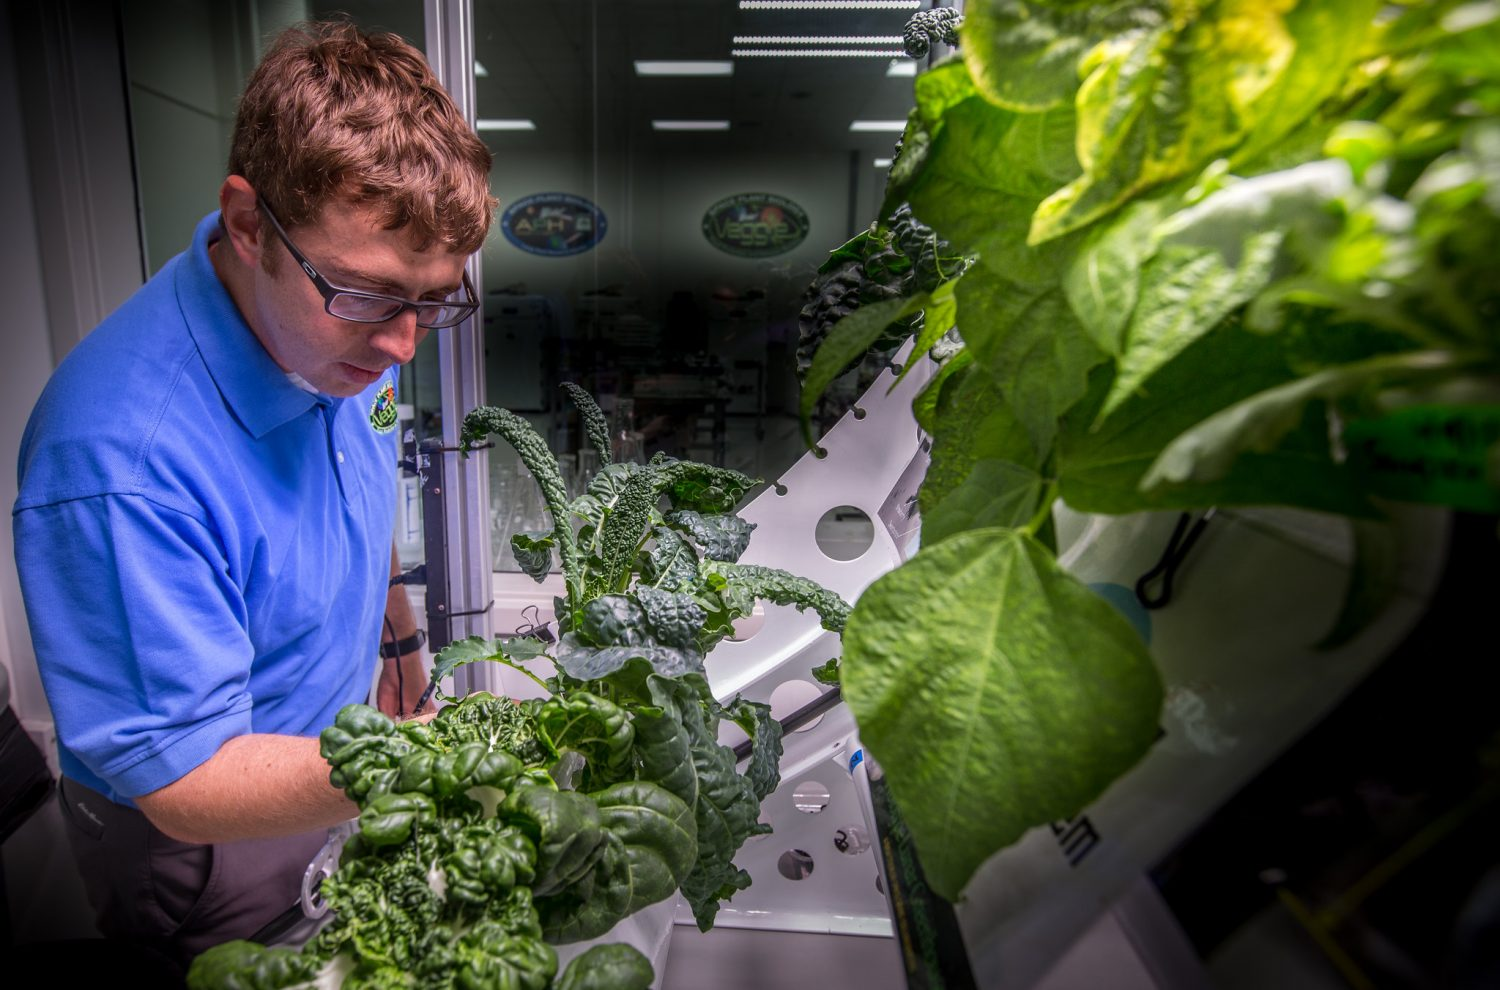 astronauts grow salad greens, eat fresh food in space, a nasa first